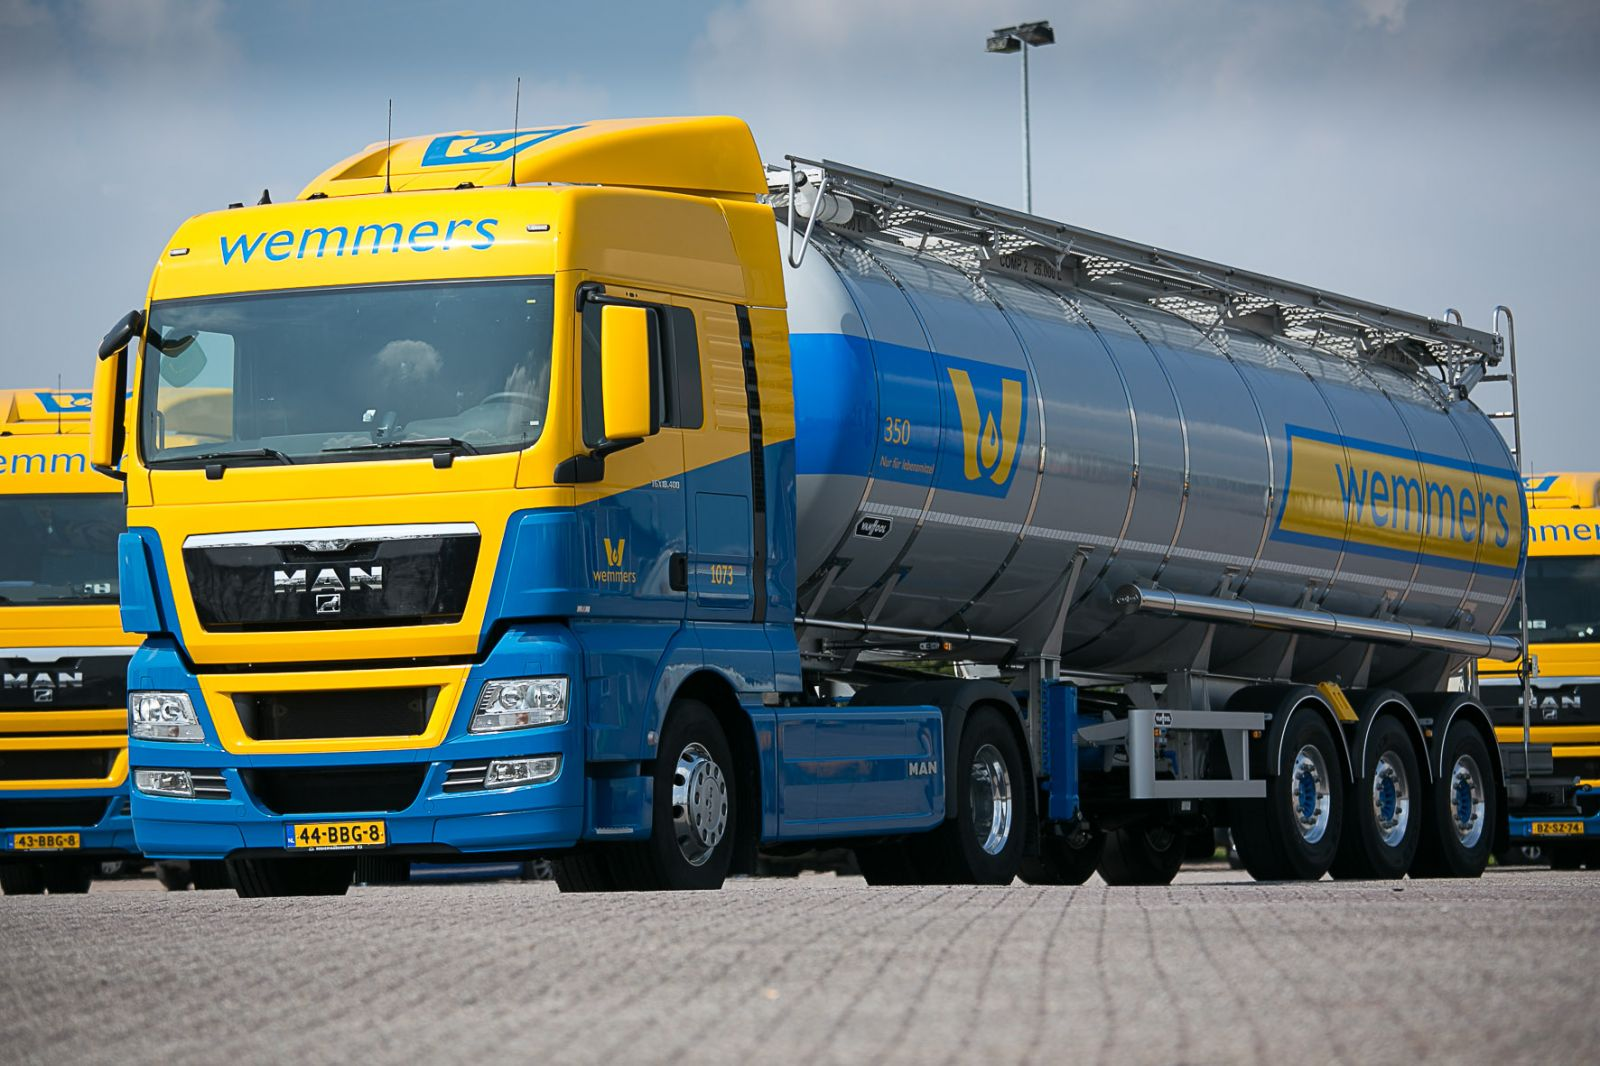 Wemmers Tanktransport